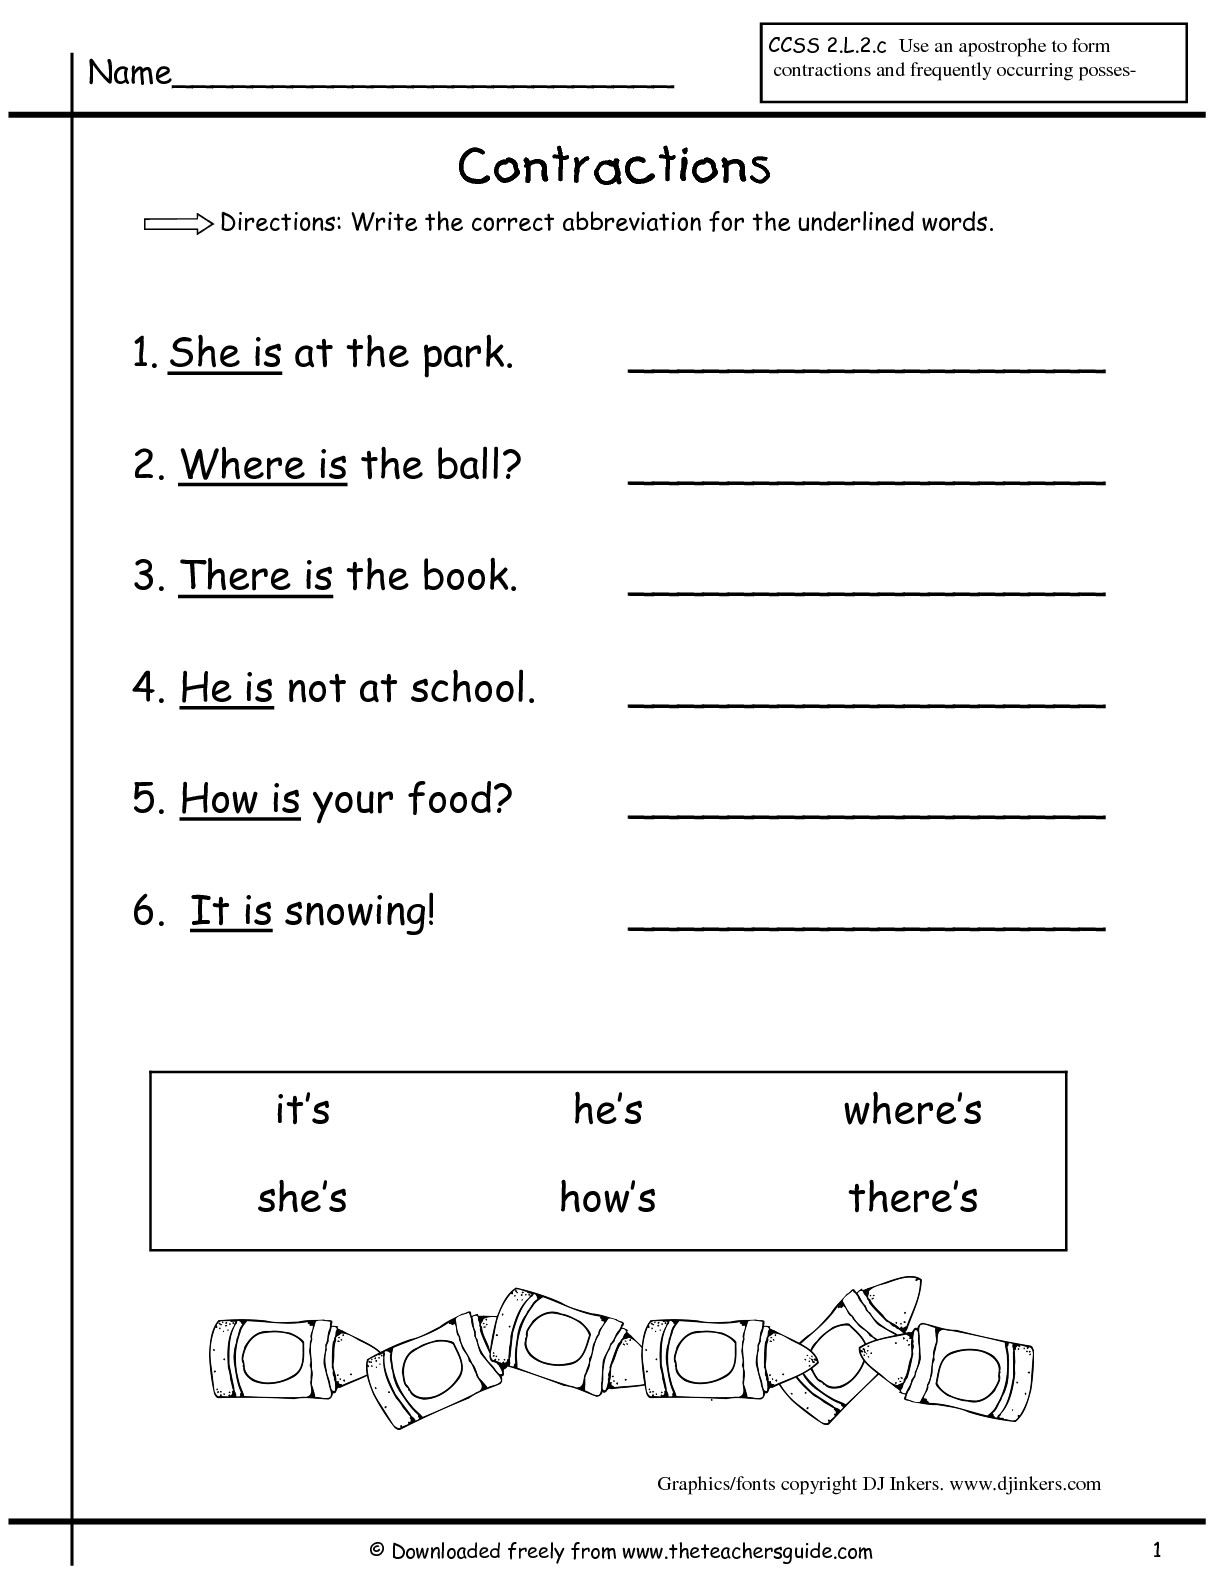 17 Best Images Of 3rd Grade Worksheets Contraction